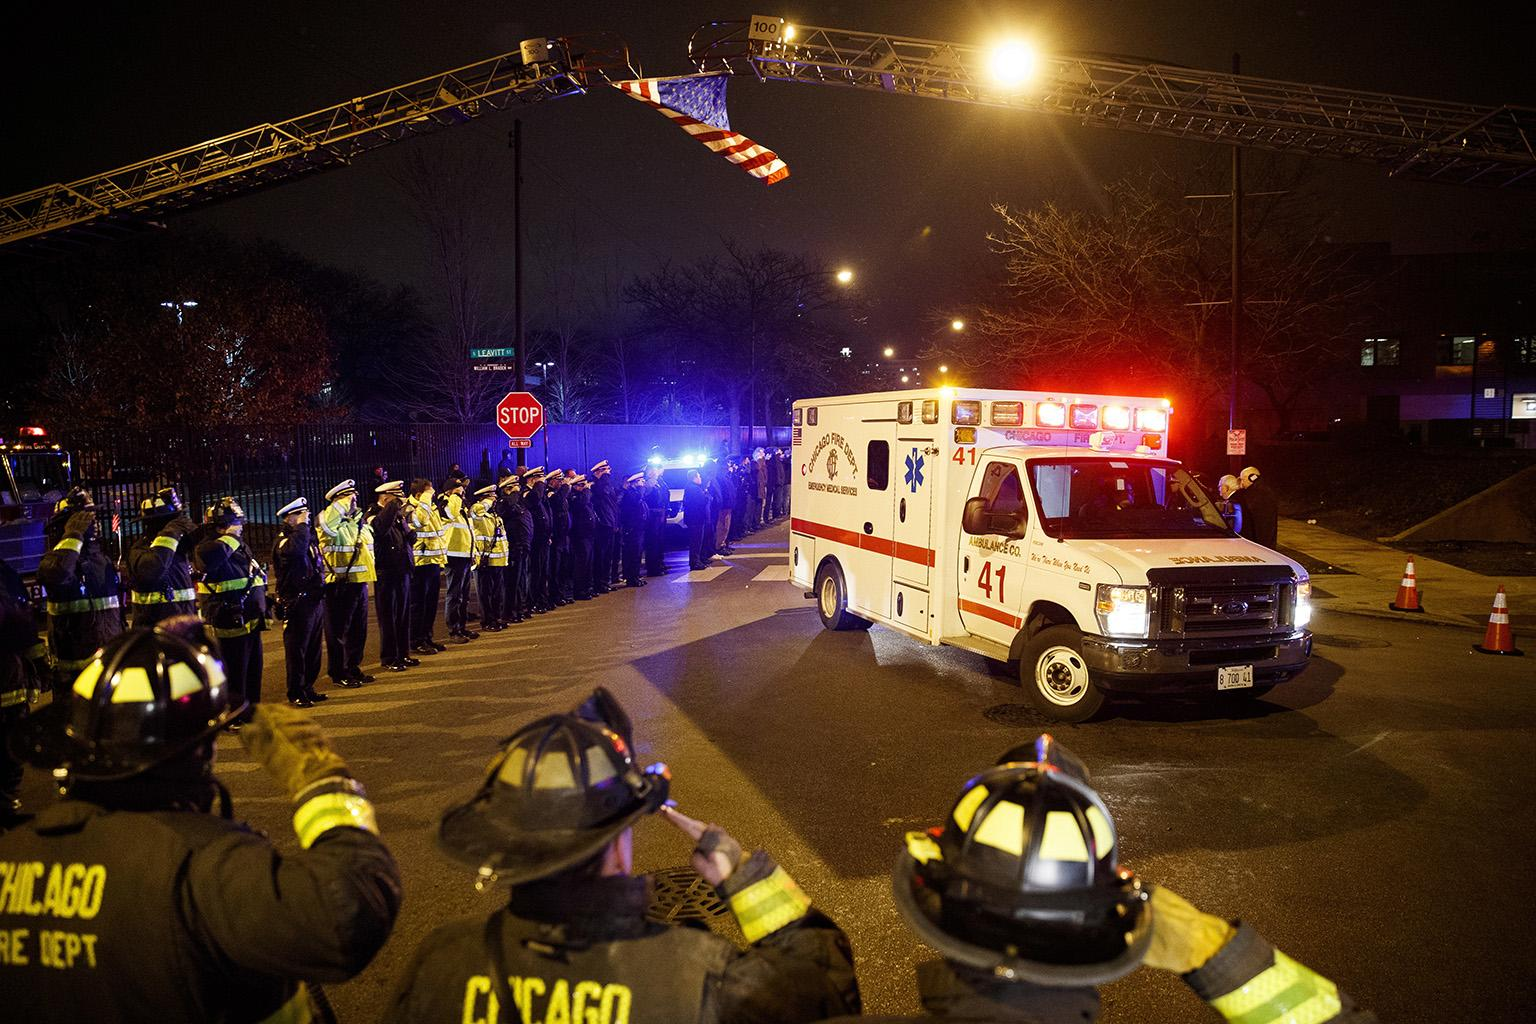 Police and firefighters salute as an ambulance arrives at the medical examiner's office carrying the body of Chicago Police Department Officer Samuel Jimenez, who was killed during a shooting at Mercy Hospital earlier in the day, Monday, Nov. 19, 2018. (Armando L. Sanchez / Chicago Tribune via AP)